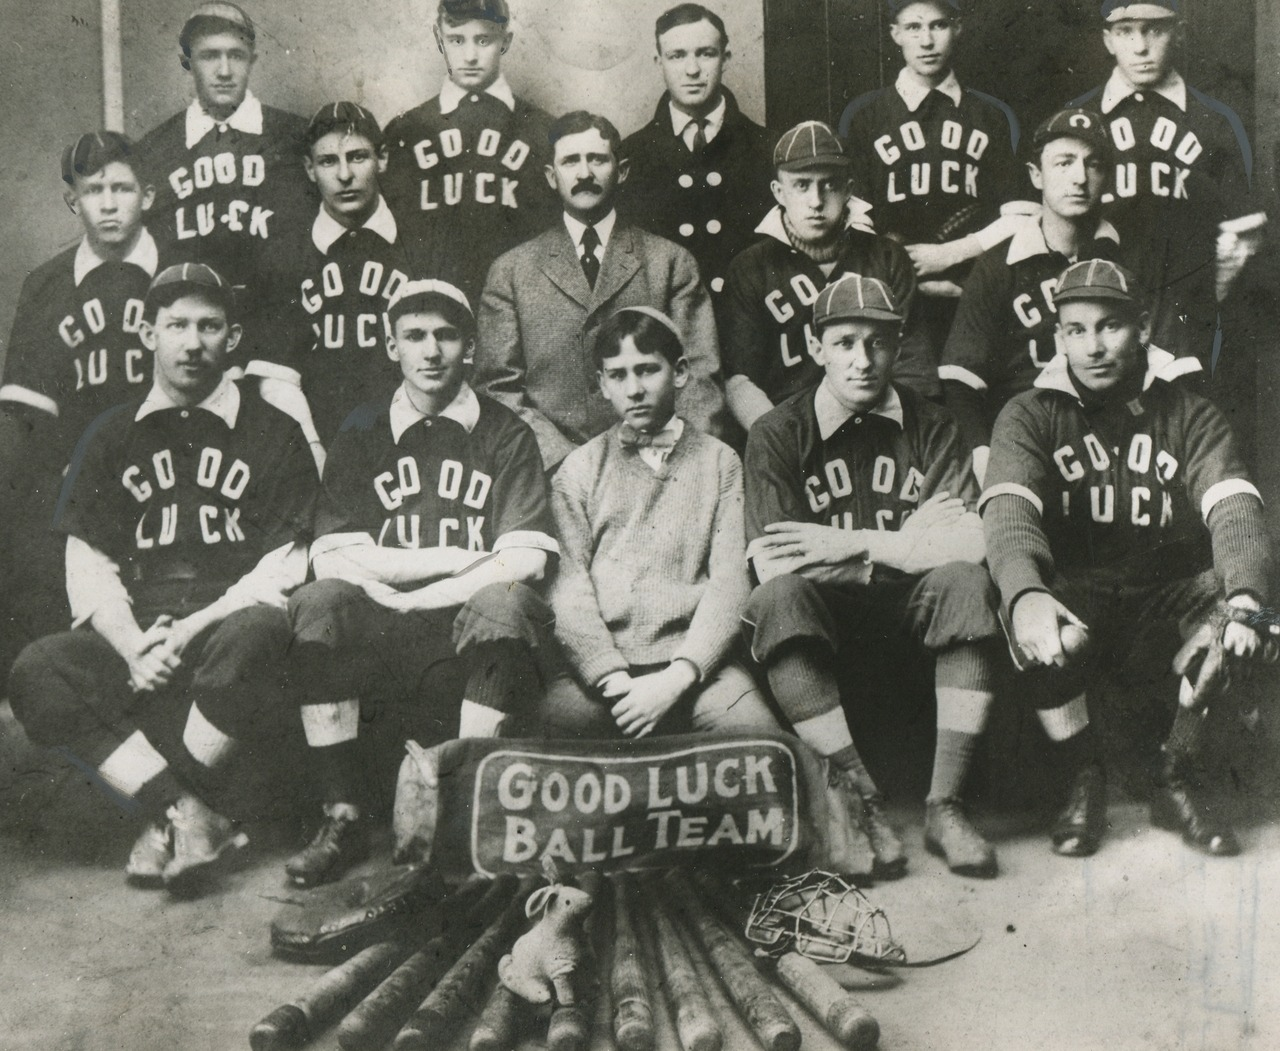 Amateur Baseball Michigan State Champions 1934.  Detroit's Good Luck Ball Team.  March 30, 1934